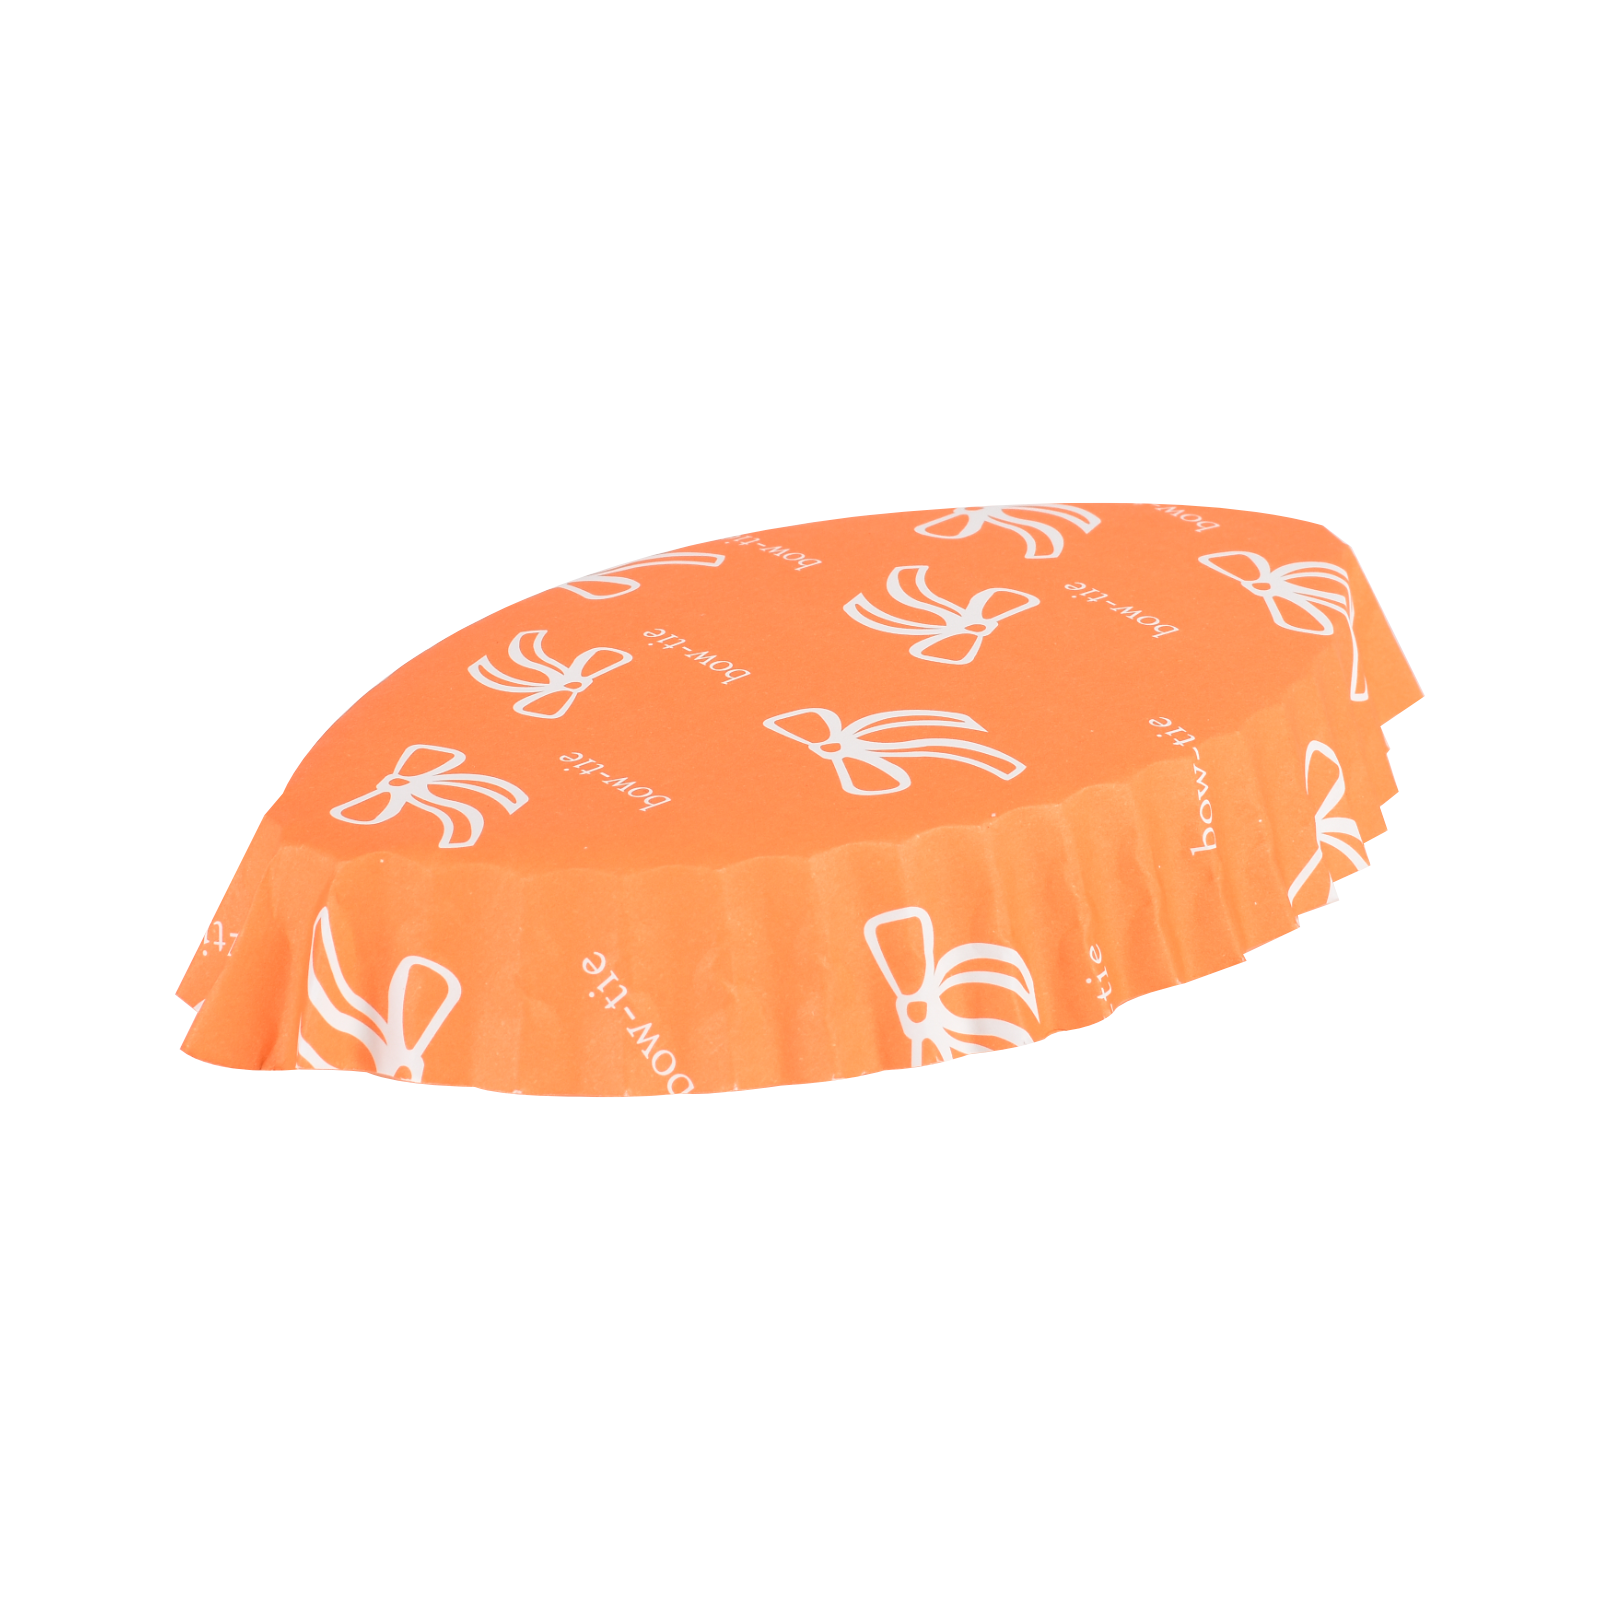 bread cup 14.png